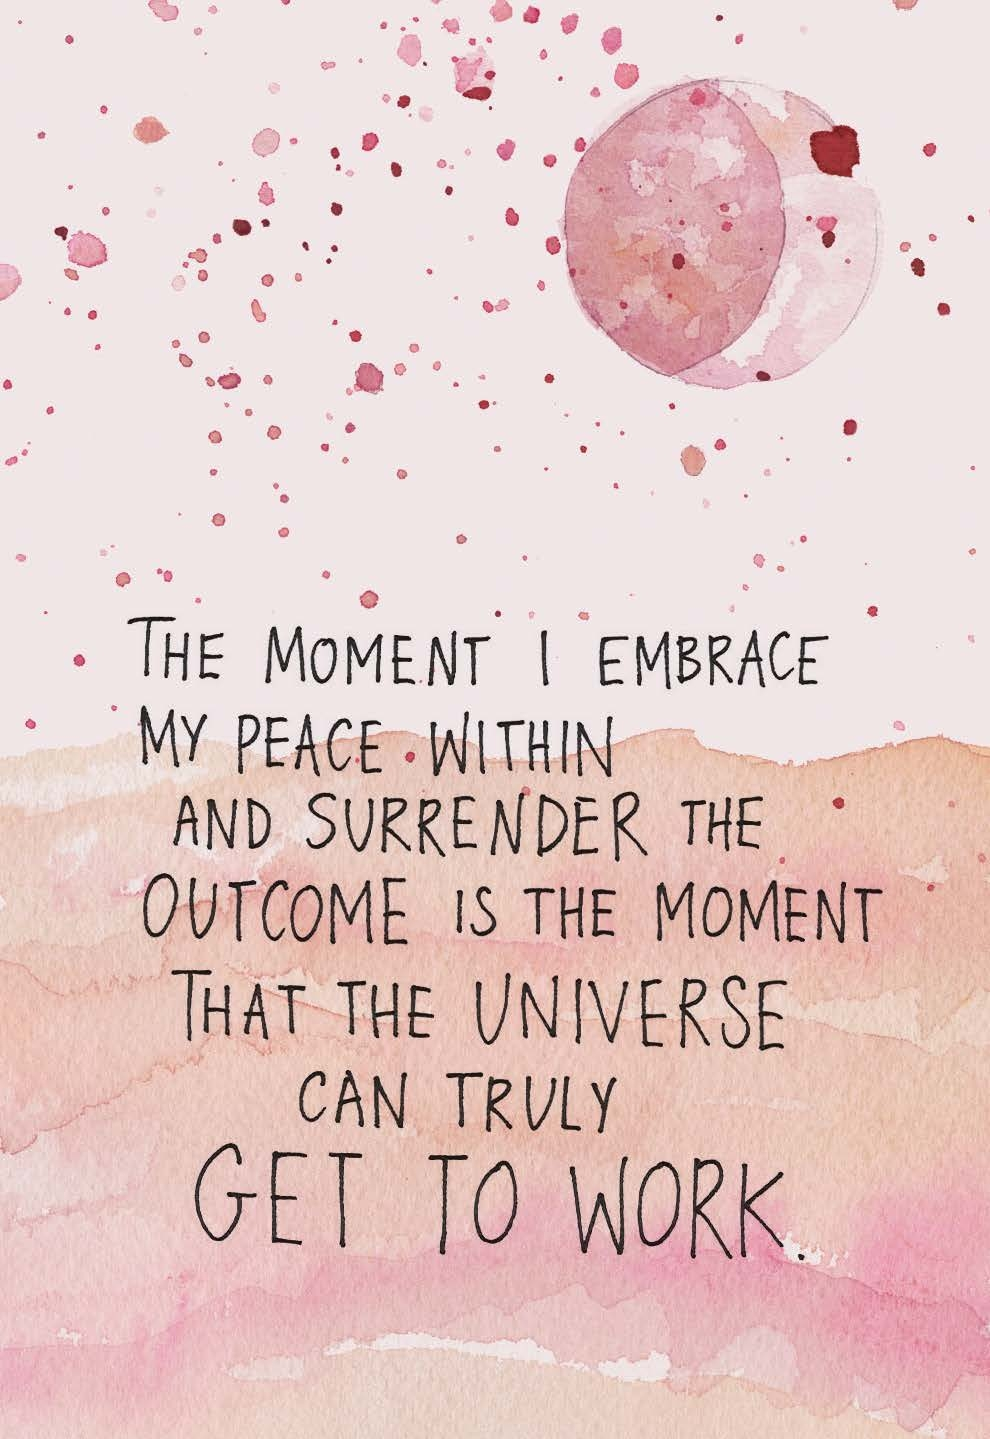 The moment I embrace my peace within and surrender the outcome is the moment the Universe can truly get to work | Gabby Bernstein | The Universe Has Your Back card deck